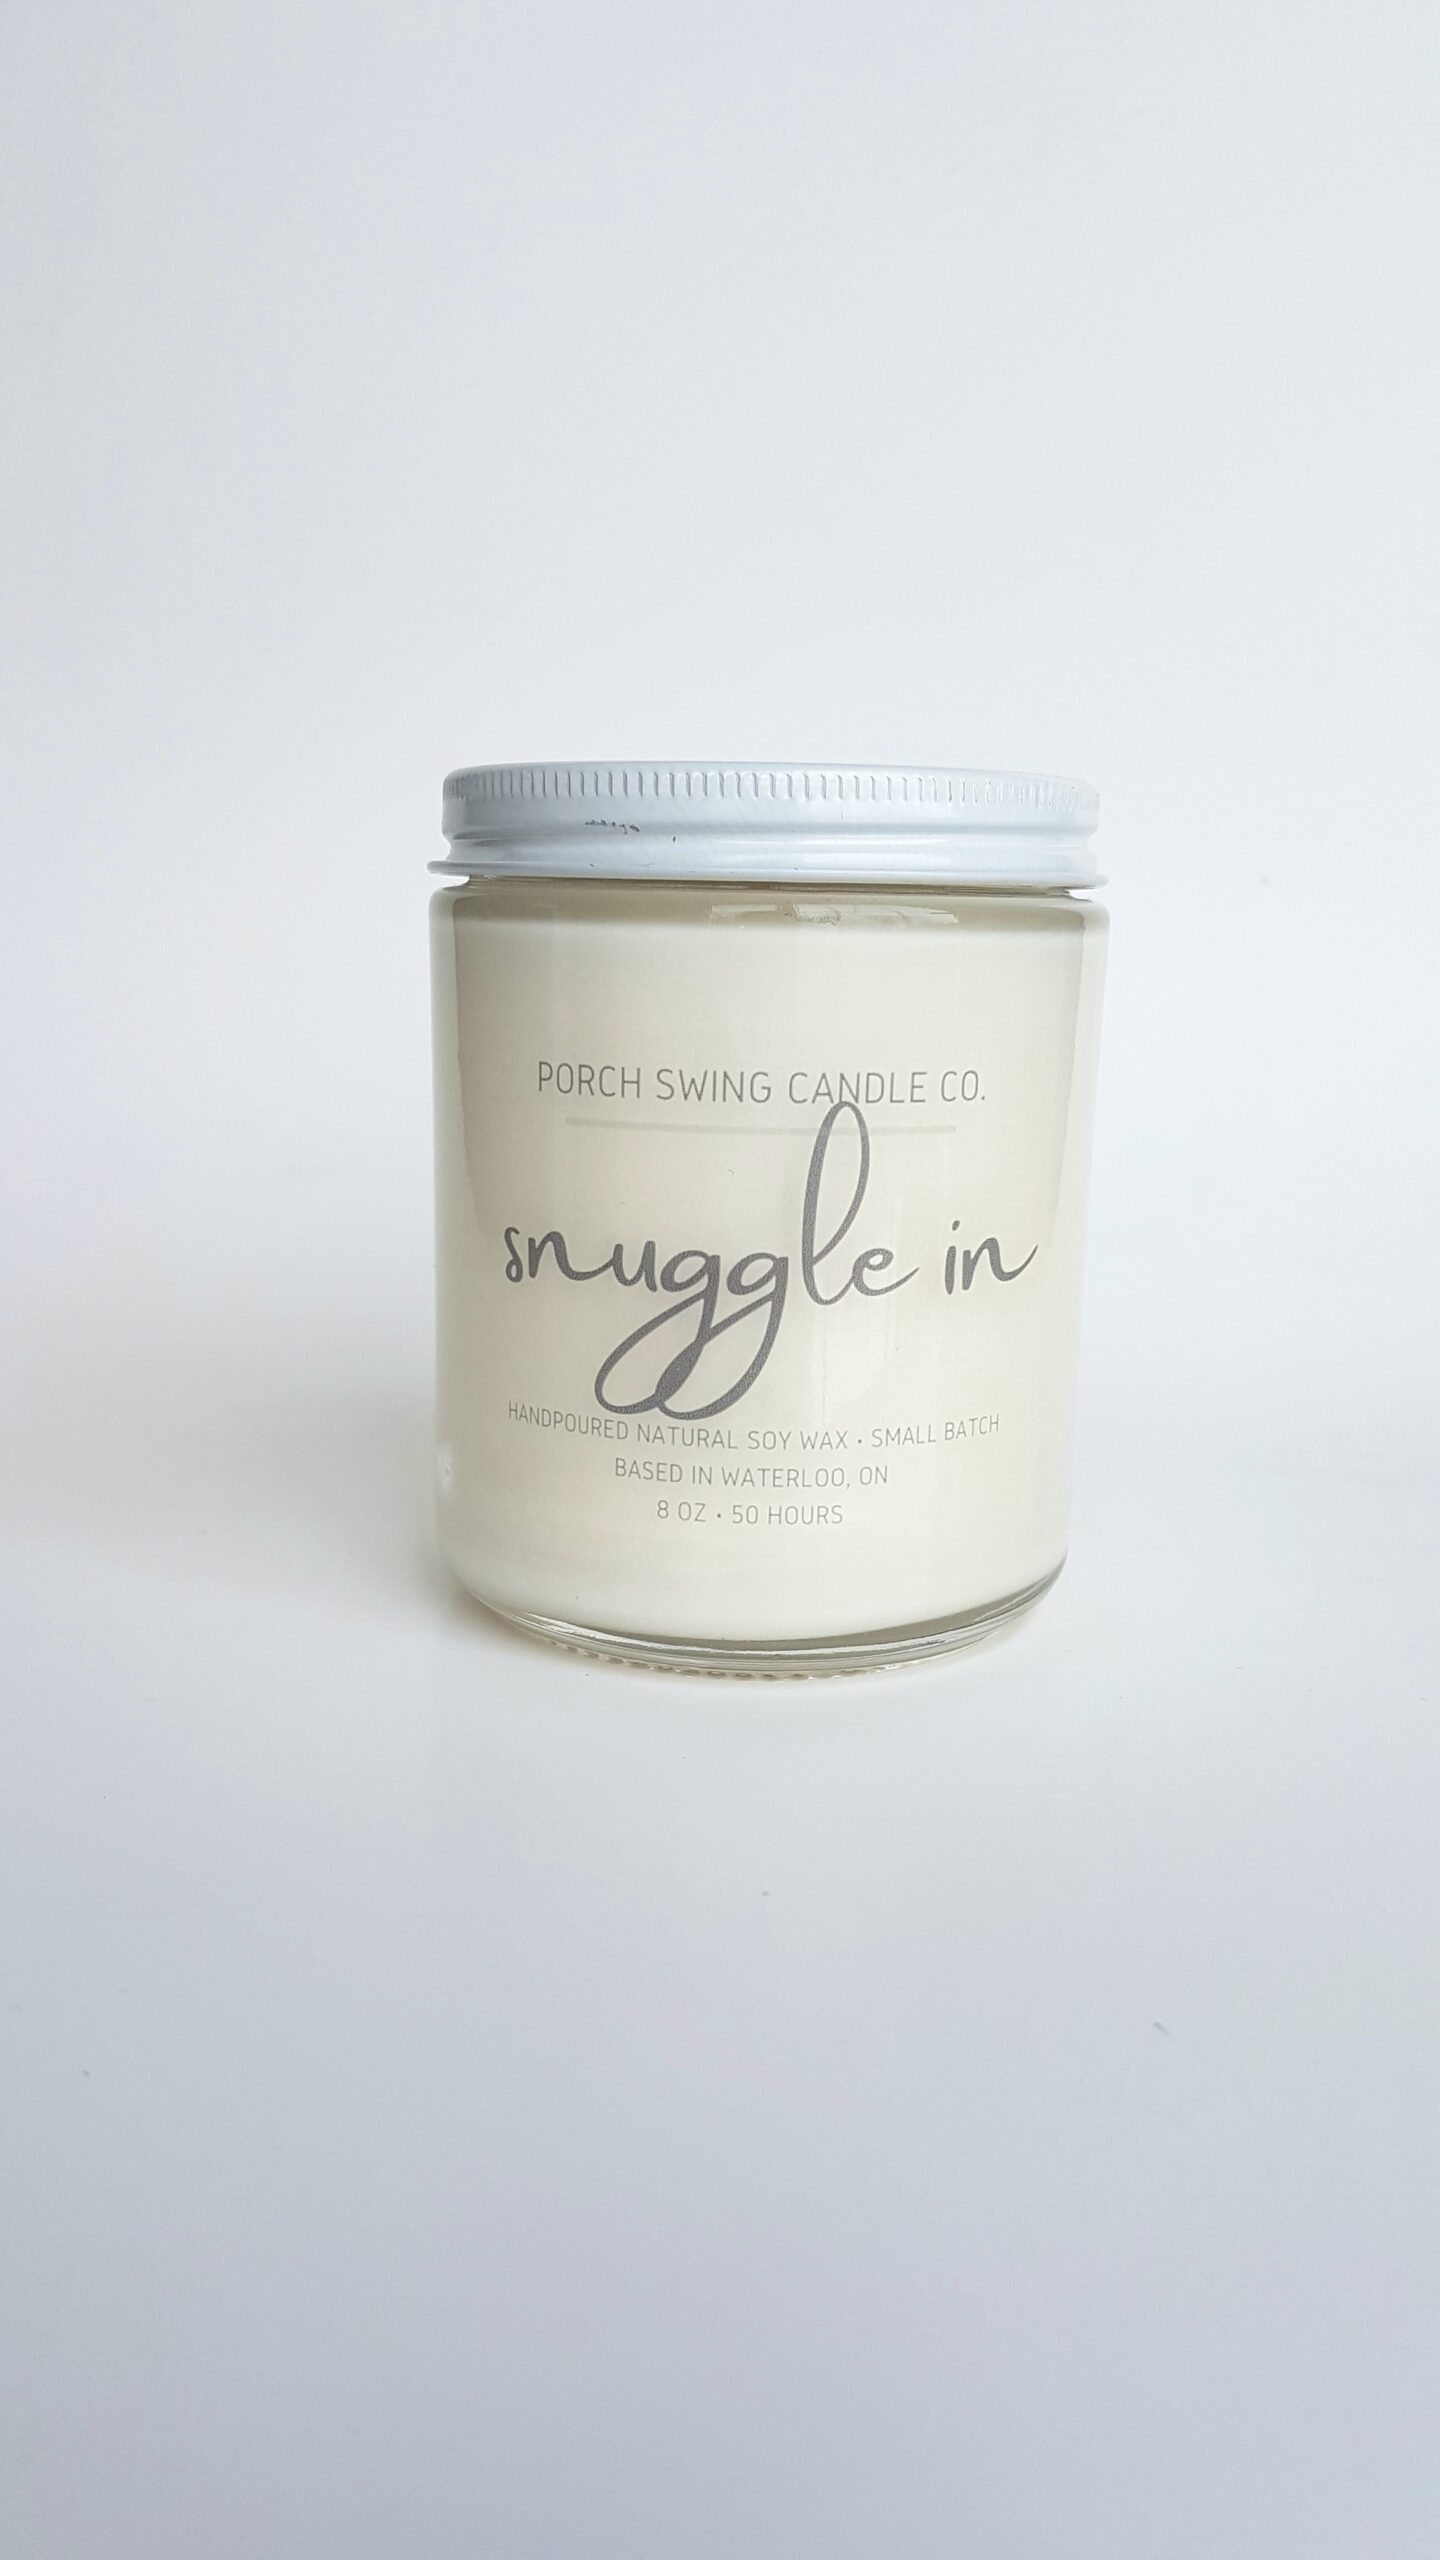 hand-poured soy wax candle in 8 oz. jar with lid